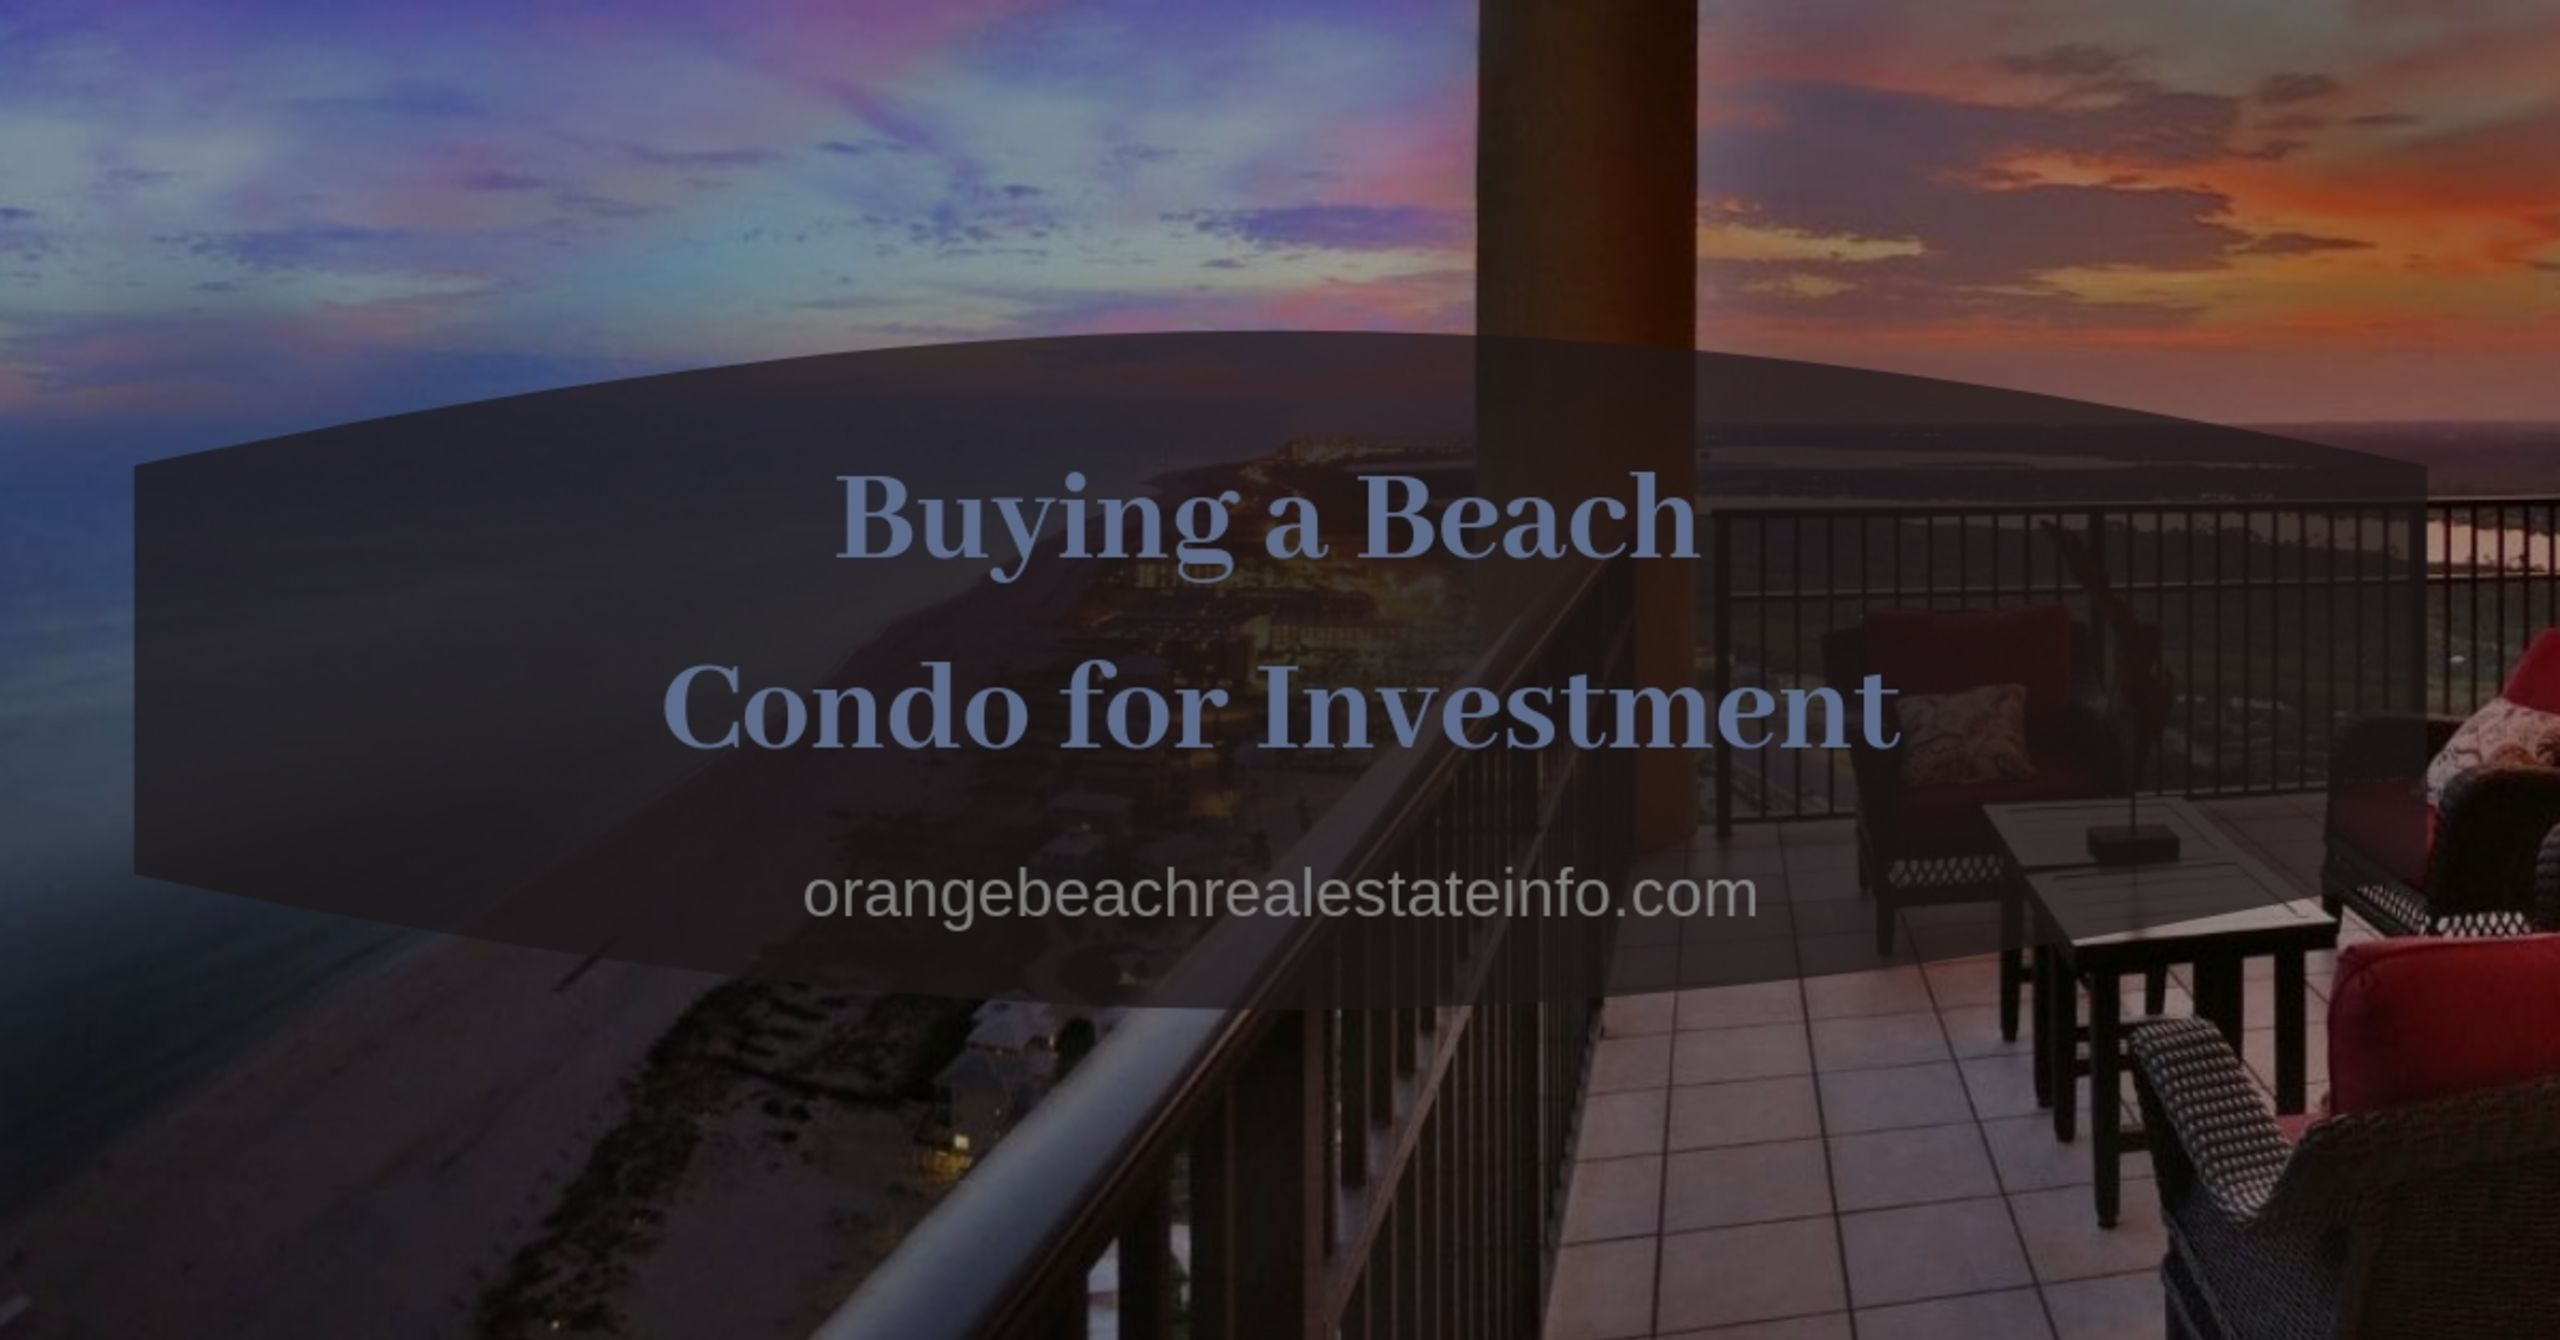 Buying a Beach Condo for Investment